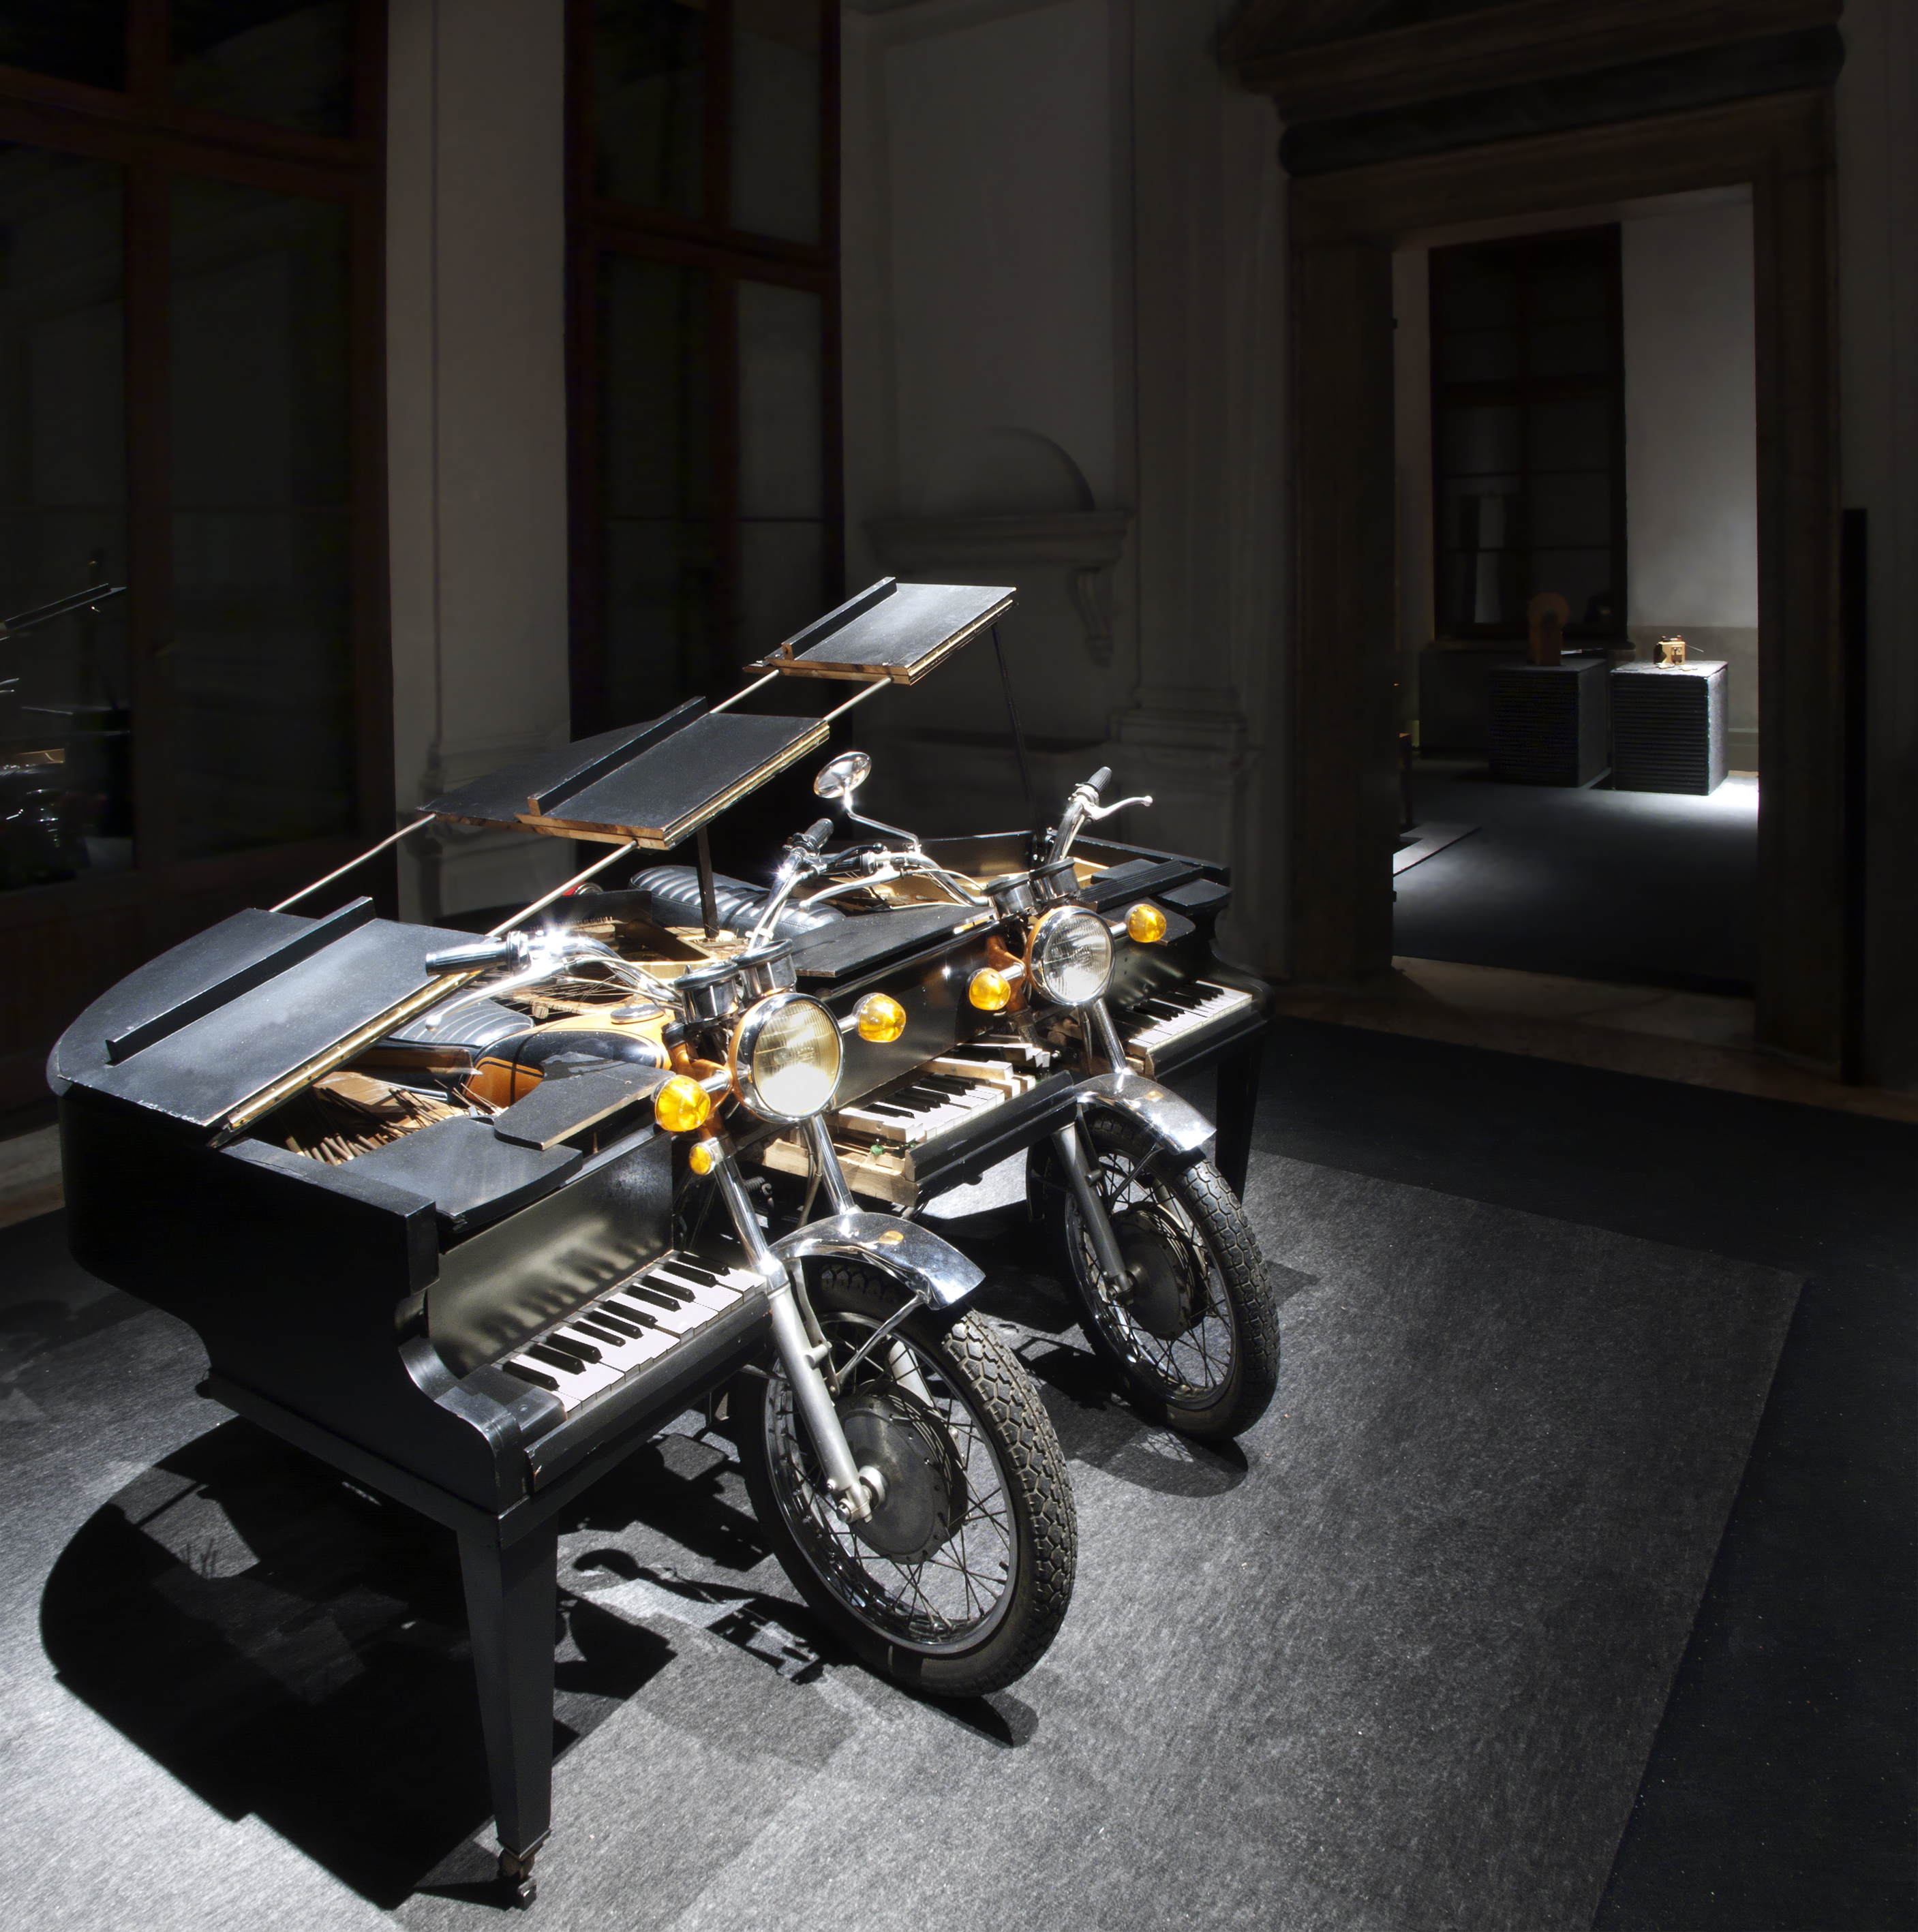 Arman, <i>The Spirit of Yamaha</i> (1997) (Photo Attilio Maranzano)